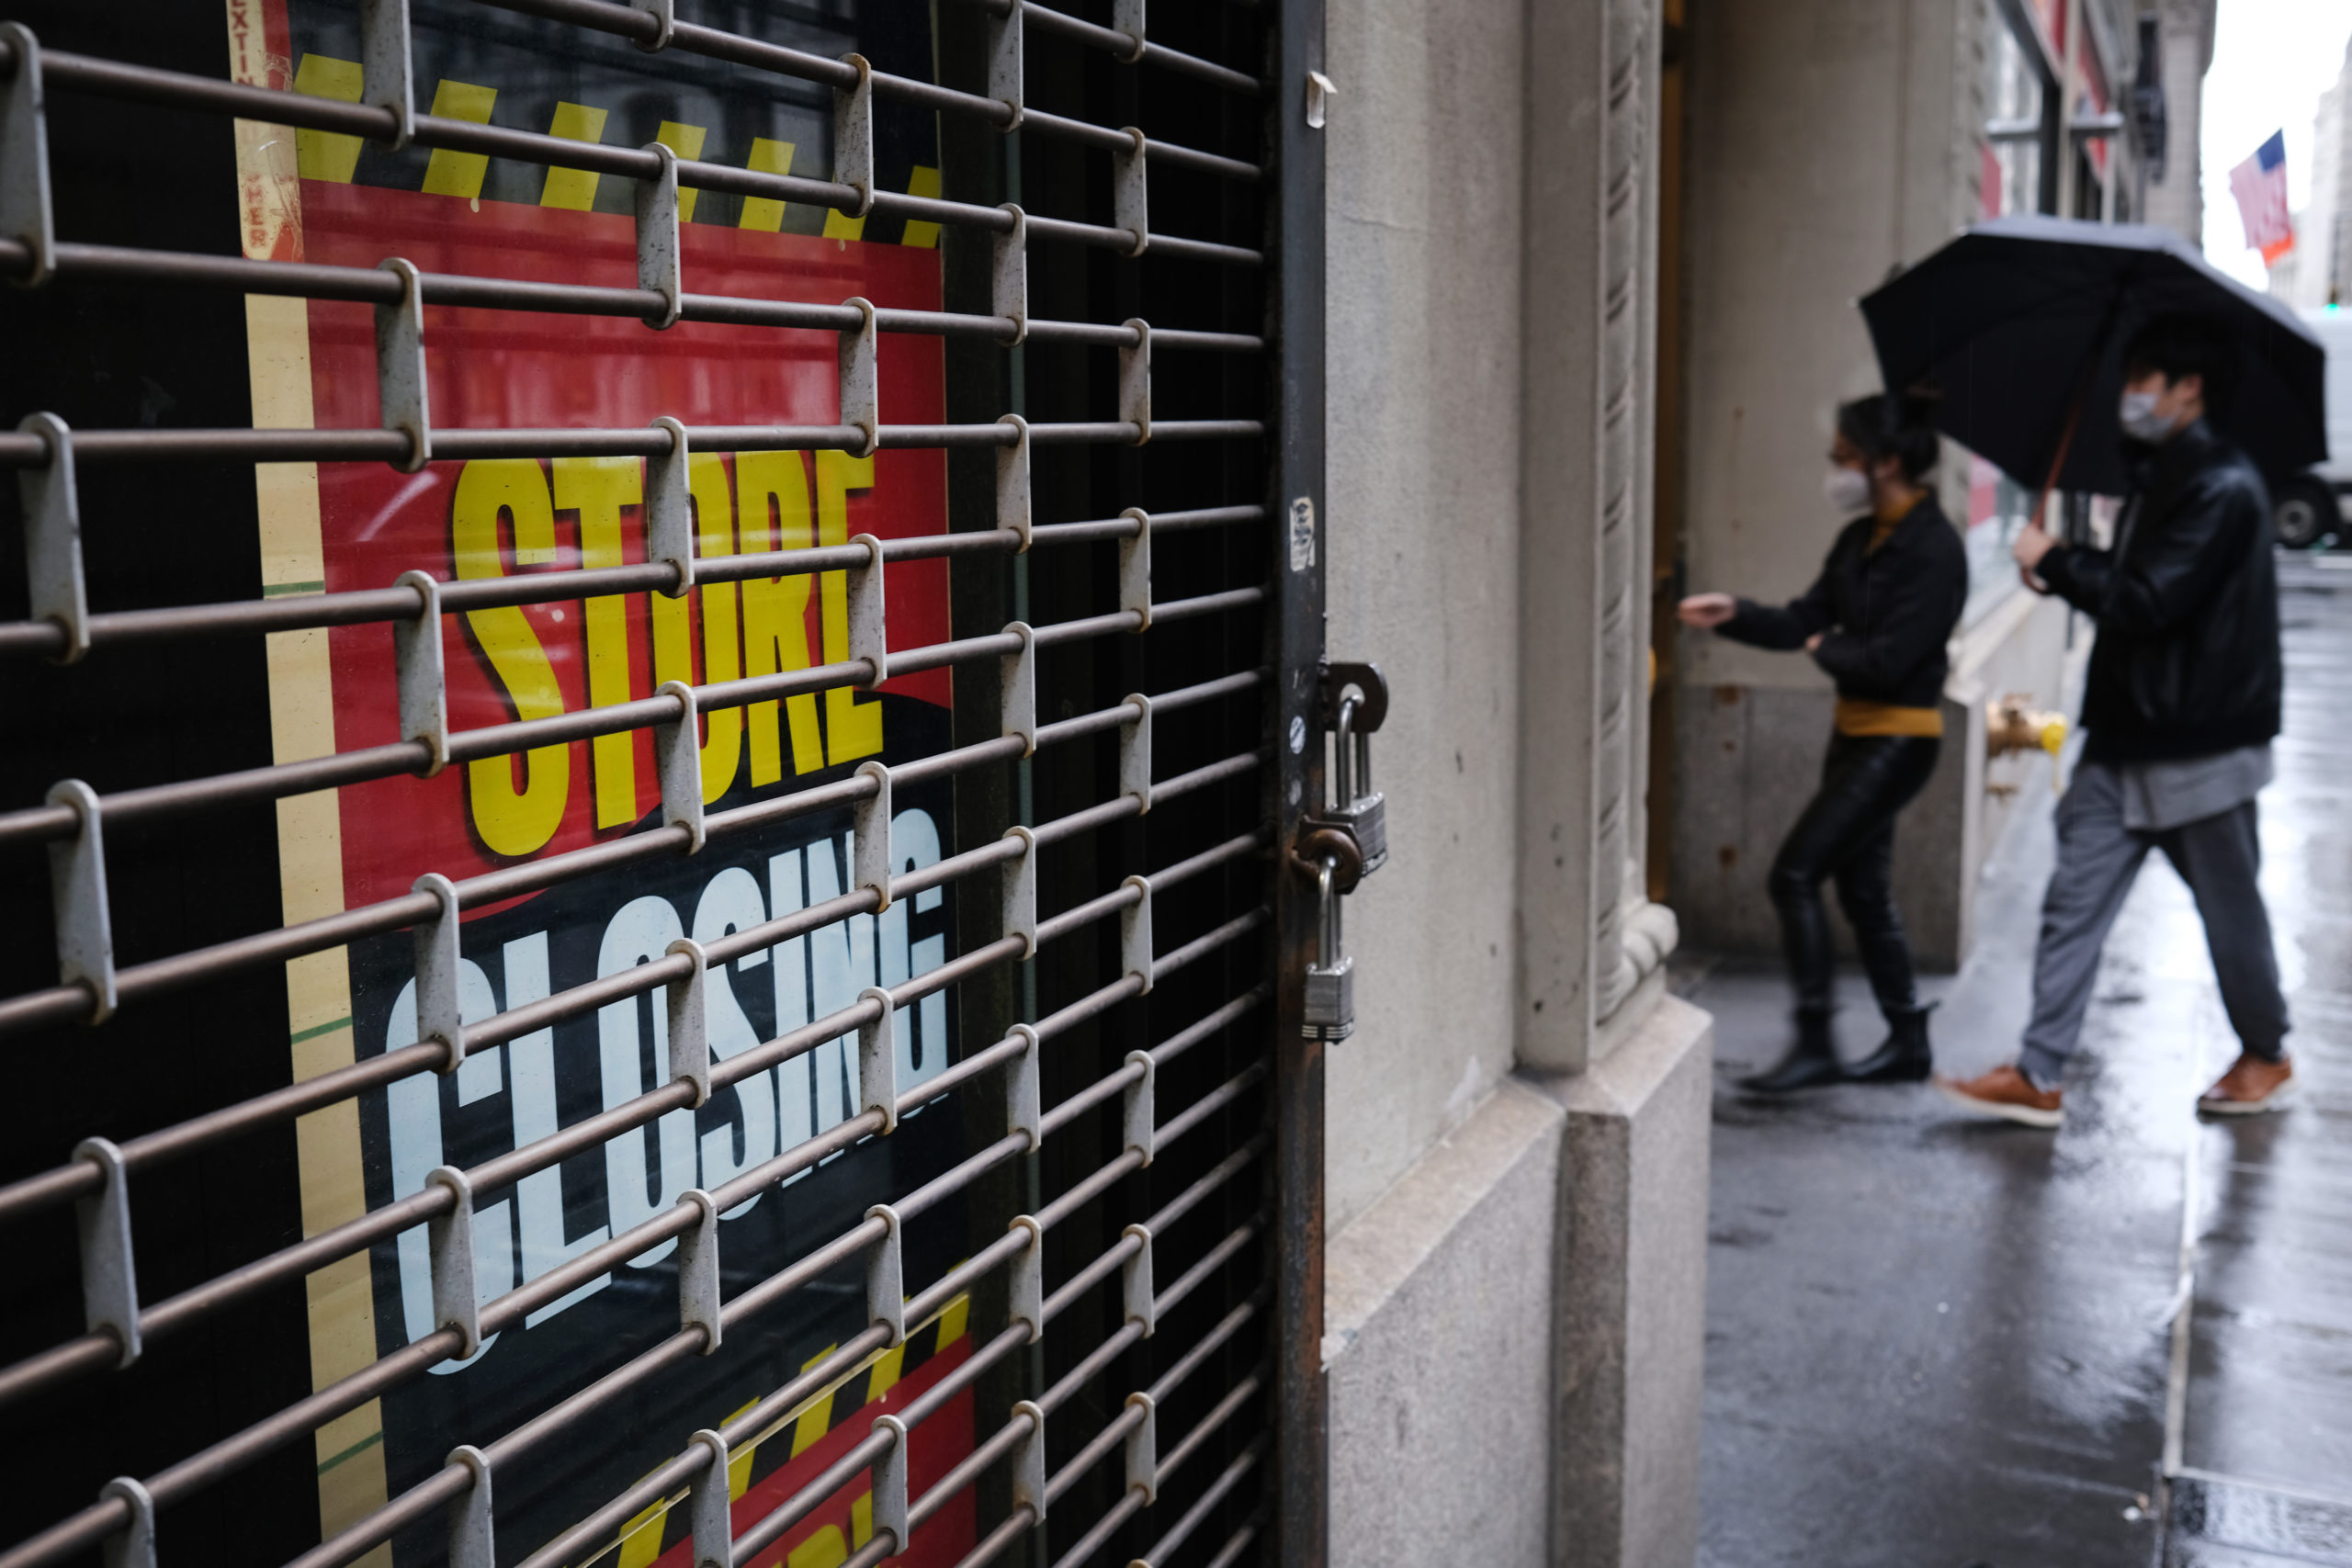 NEW YORK, NY - MAY 08: A store stands closed near Wall Street as the coronavirus keeps financial markets and businesses mostly closed on May 08, 2020 in New York City. The Bureau of Labor Statistics announced on Friday that the US economy lost 20.5 million jobs in April. This is the largest decline in jobs since the government began tracking the data in 1939. (Photo by Spencer Platt/Getty Images)